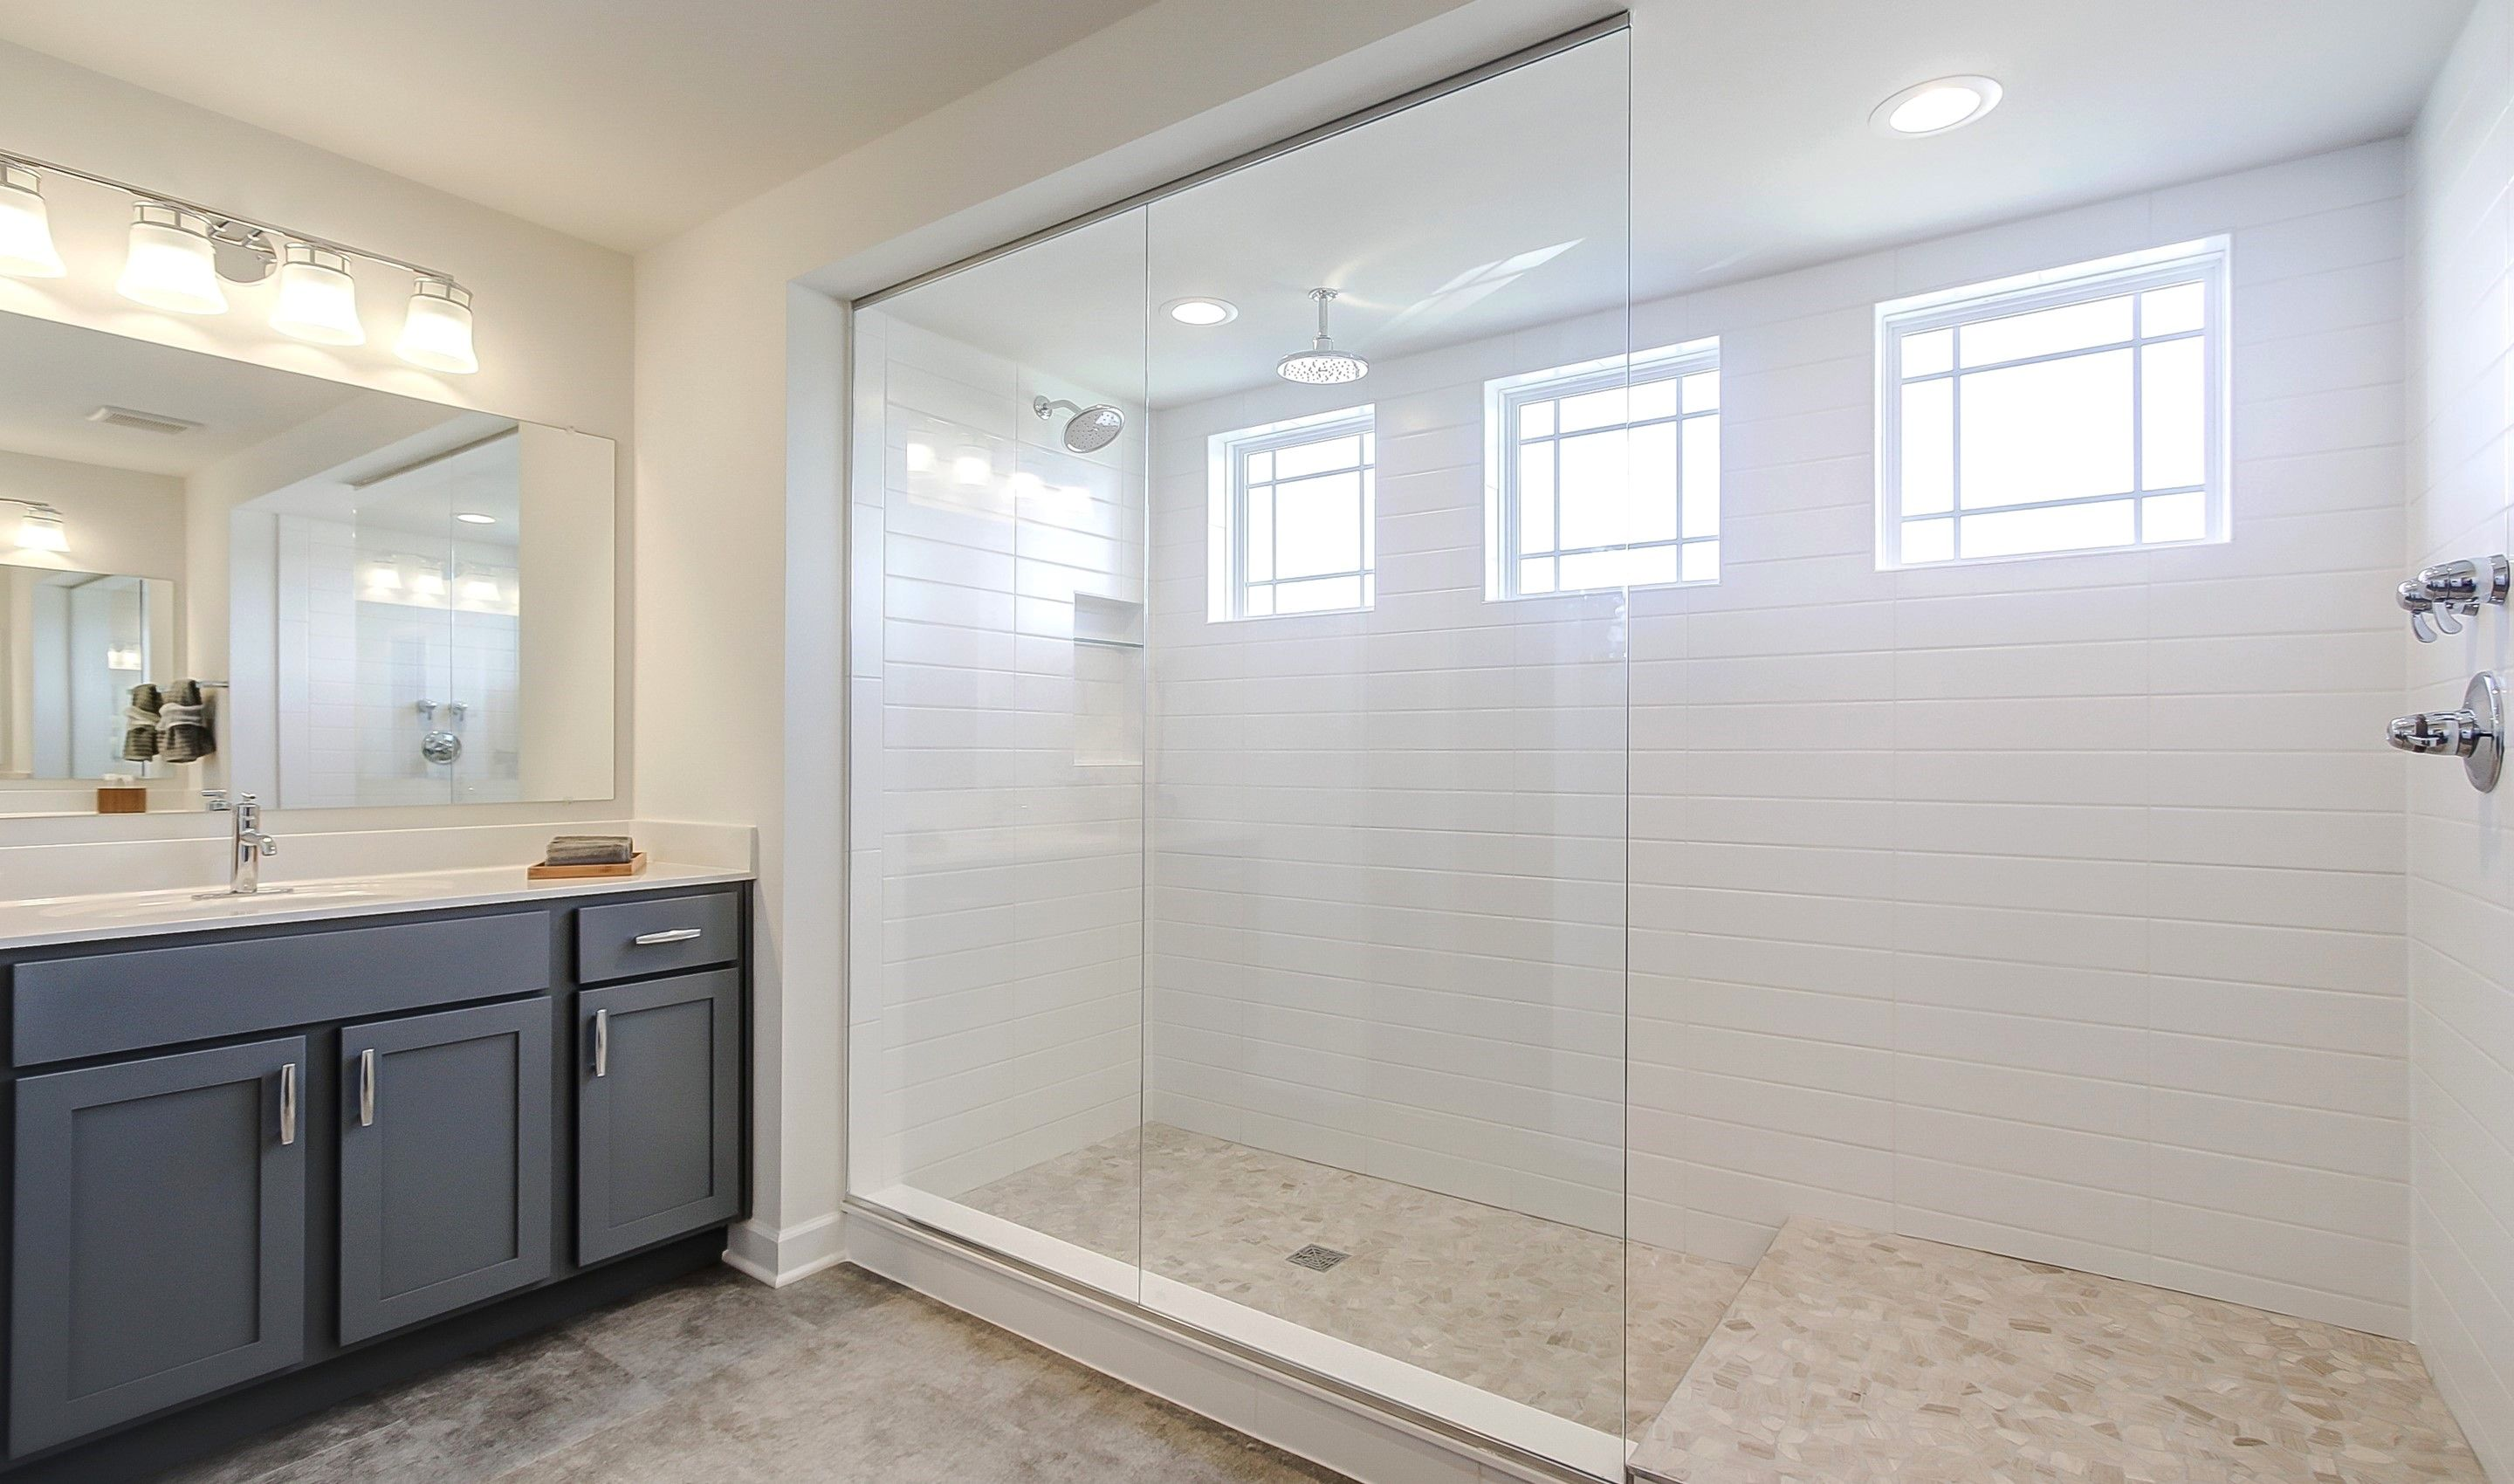 Bathroom featured in the Henley II By K. Hovnanian® Homes in Chicago, IL